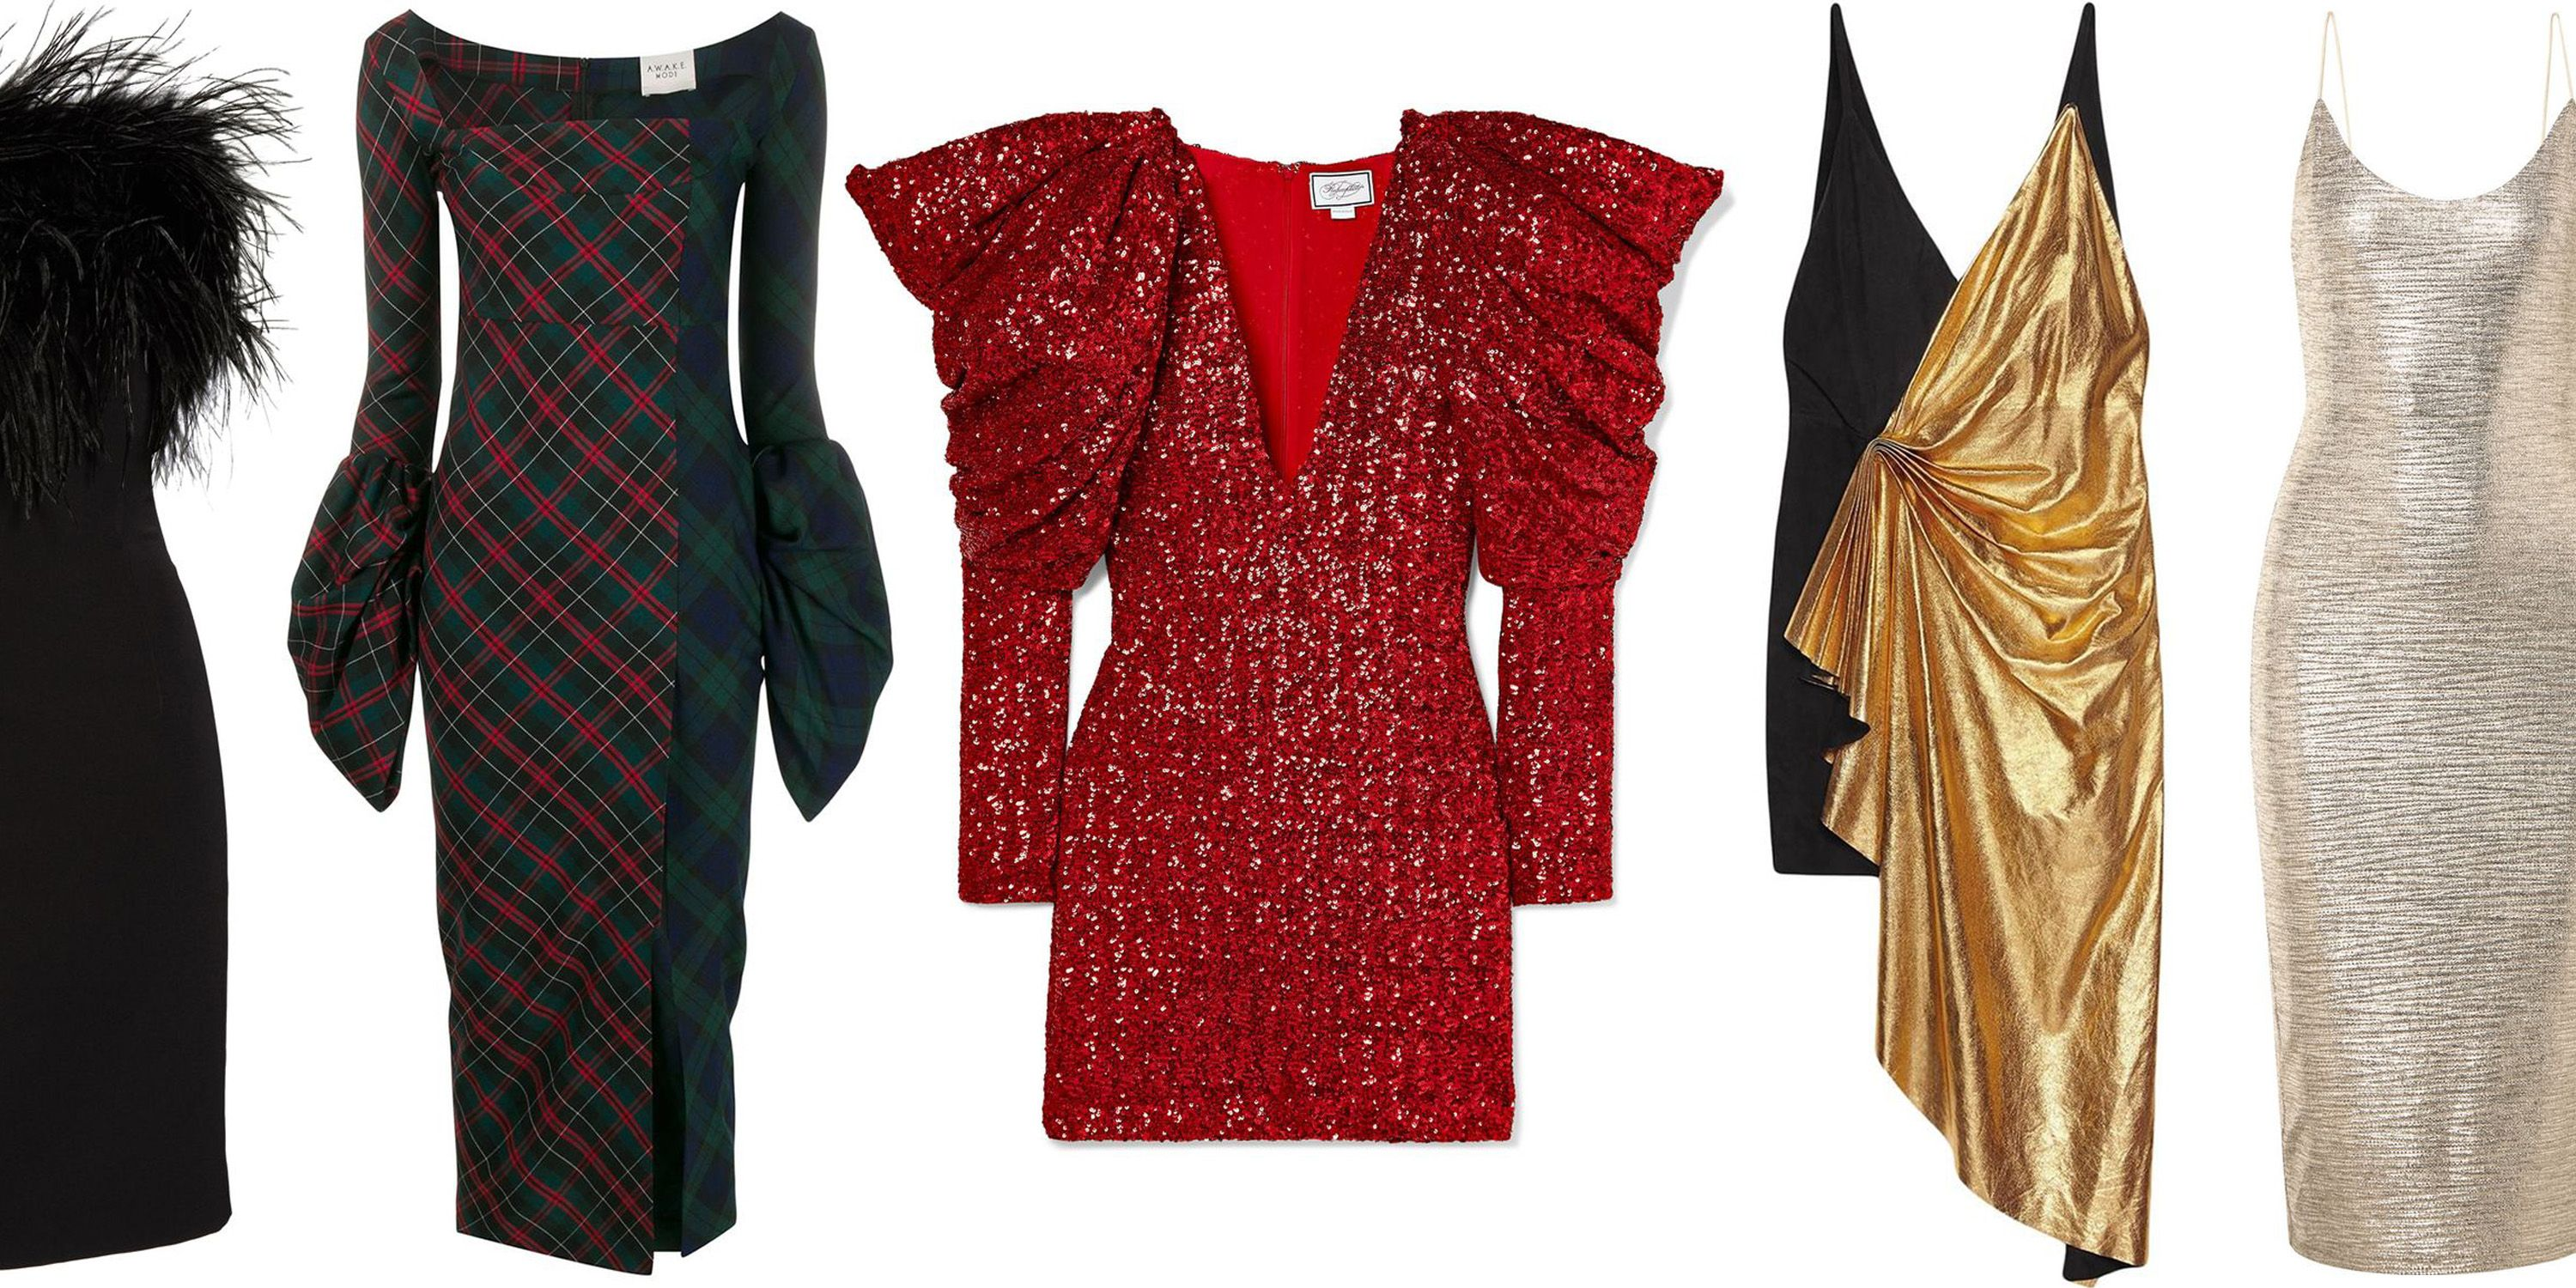 27 Festive Holiday Dresses for Cocktail Party Season